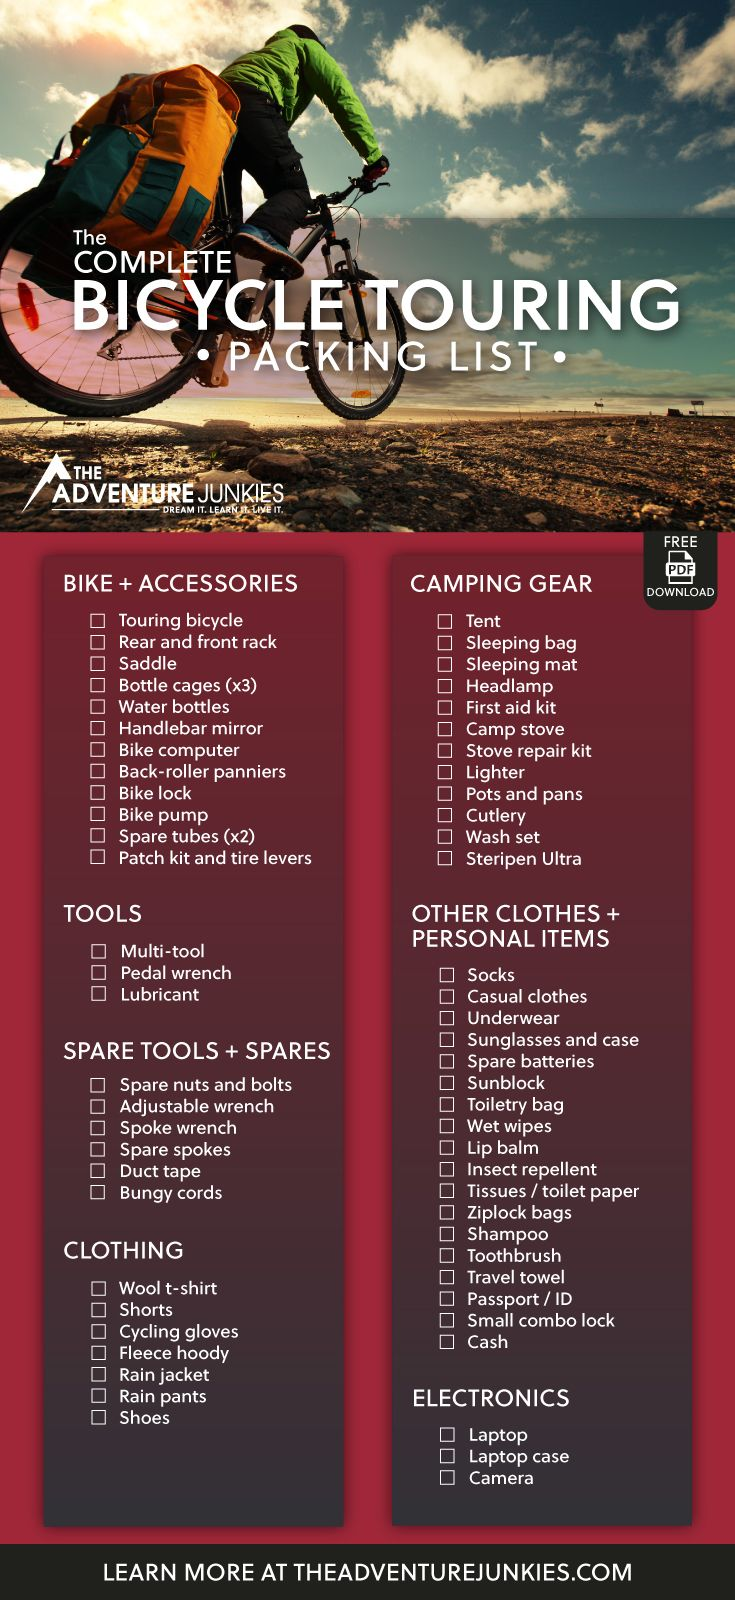 The Ultimate Bike Touring Packing List with a PDF Download